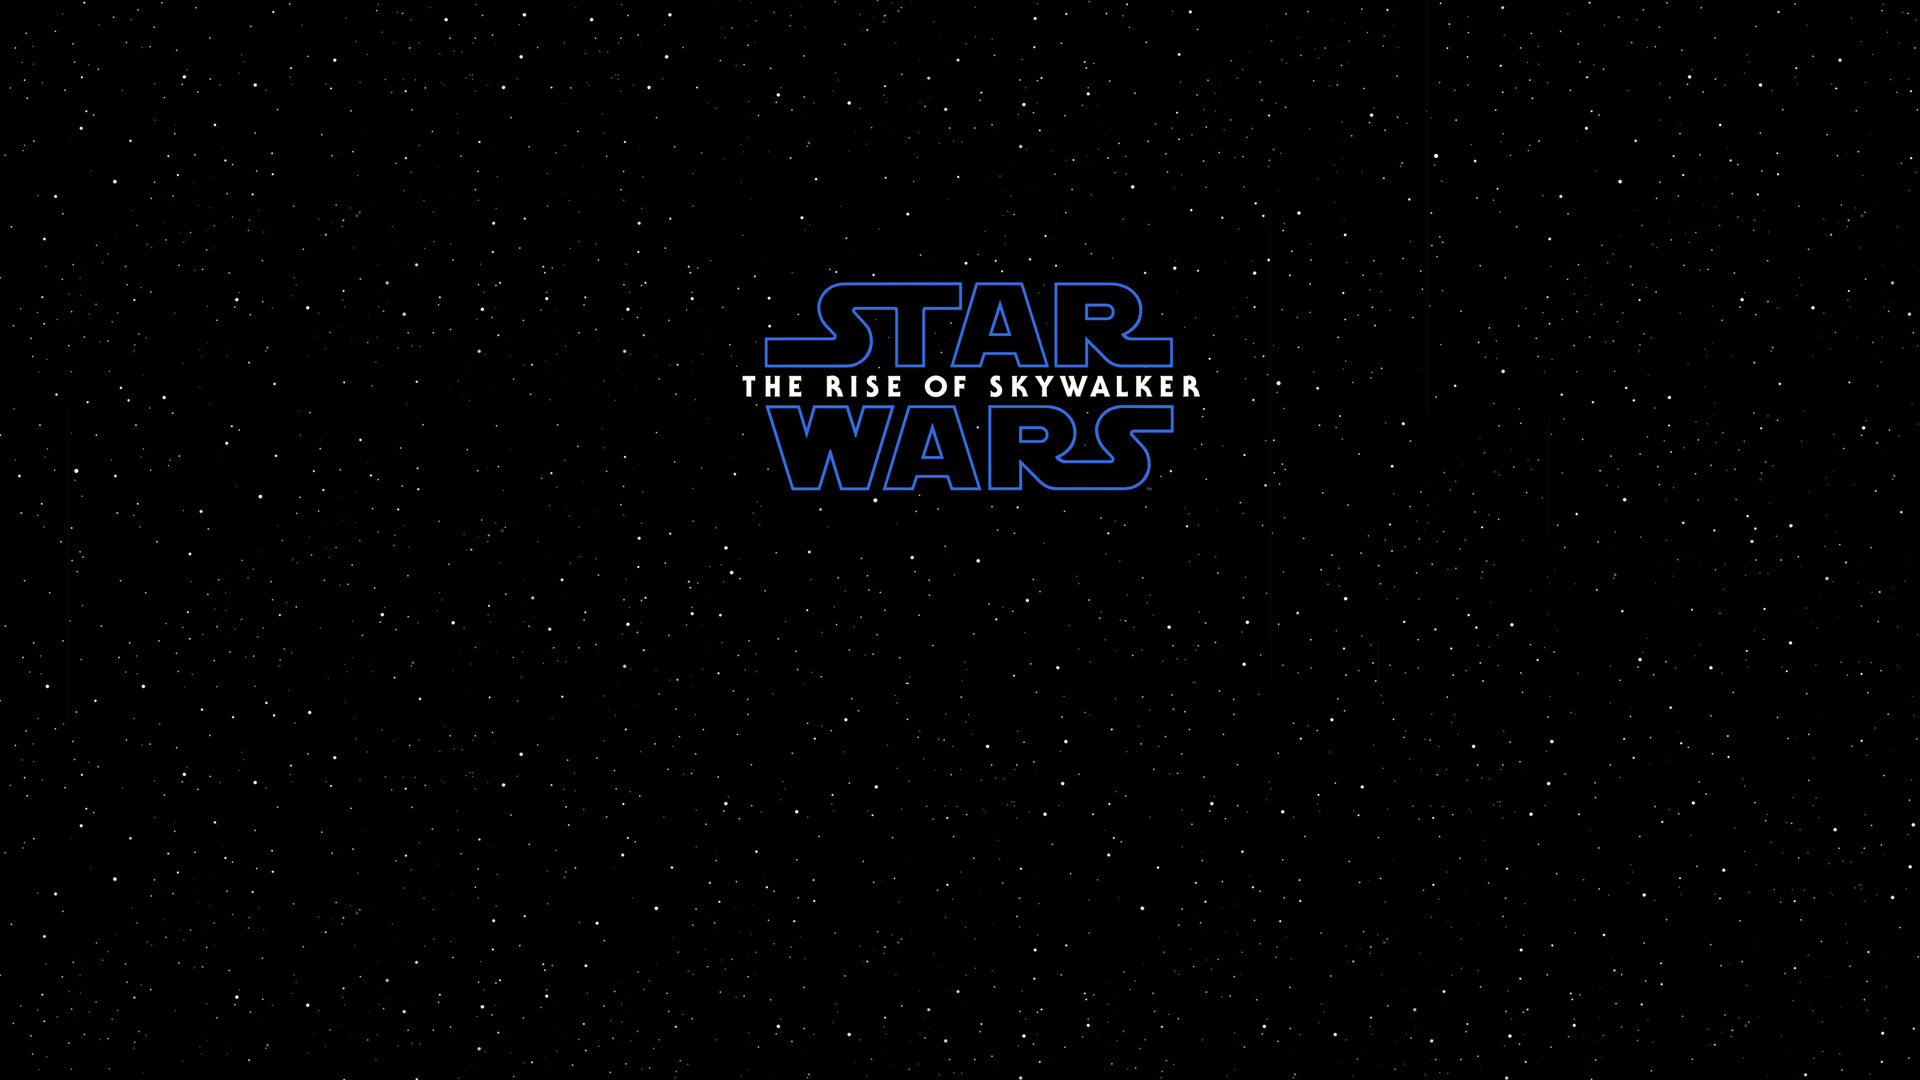 star-wars-the-rise-of-skywalker-2019-m1.